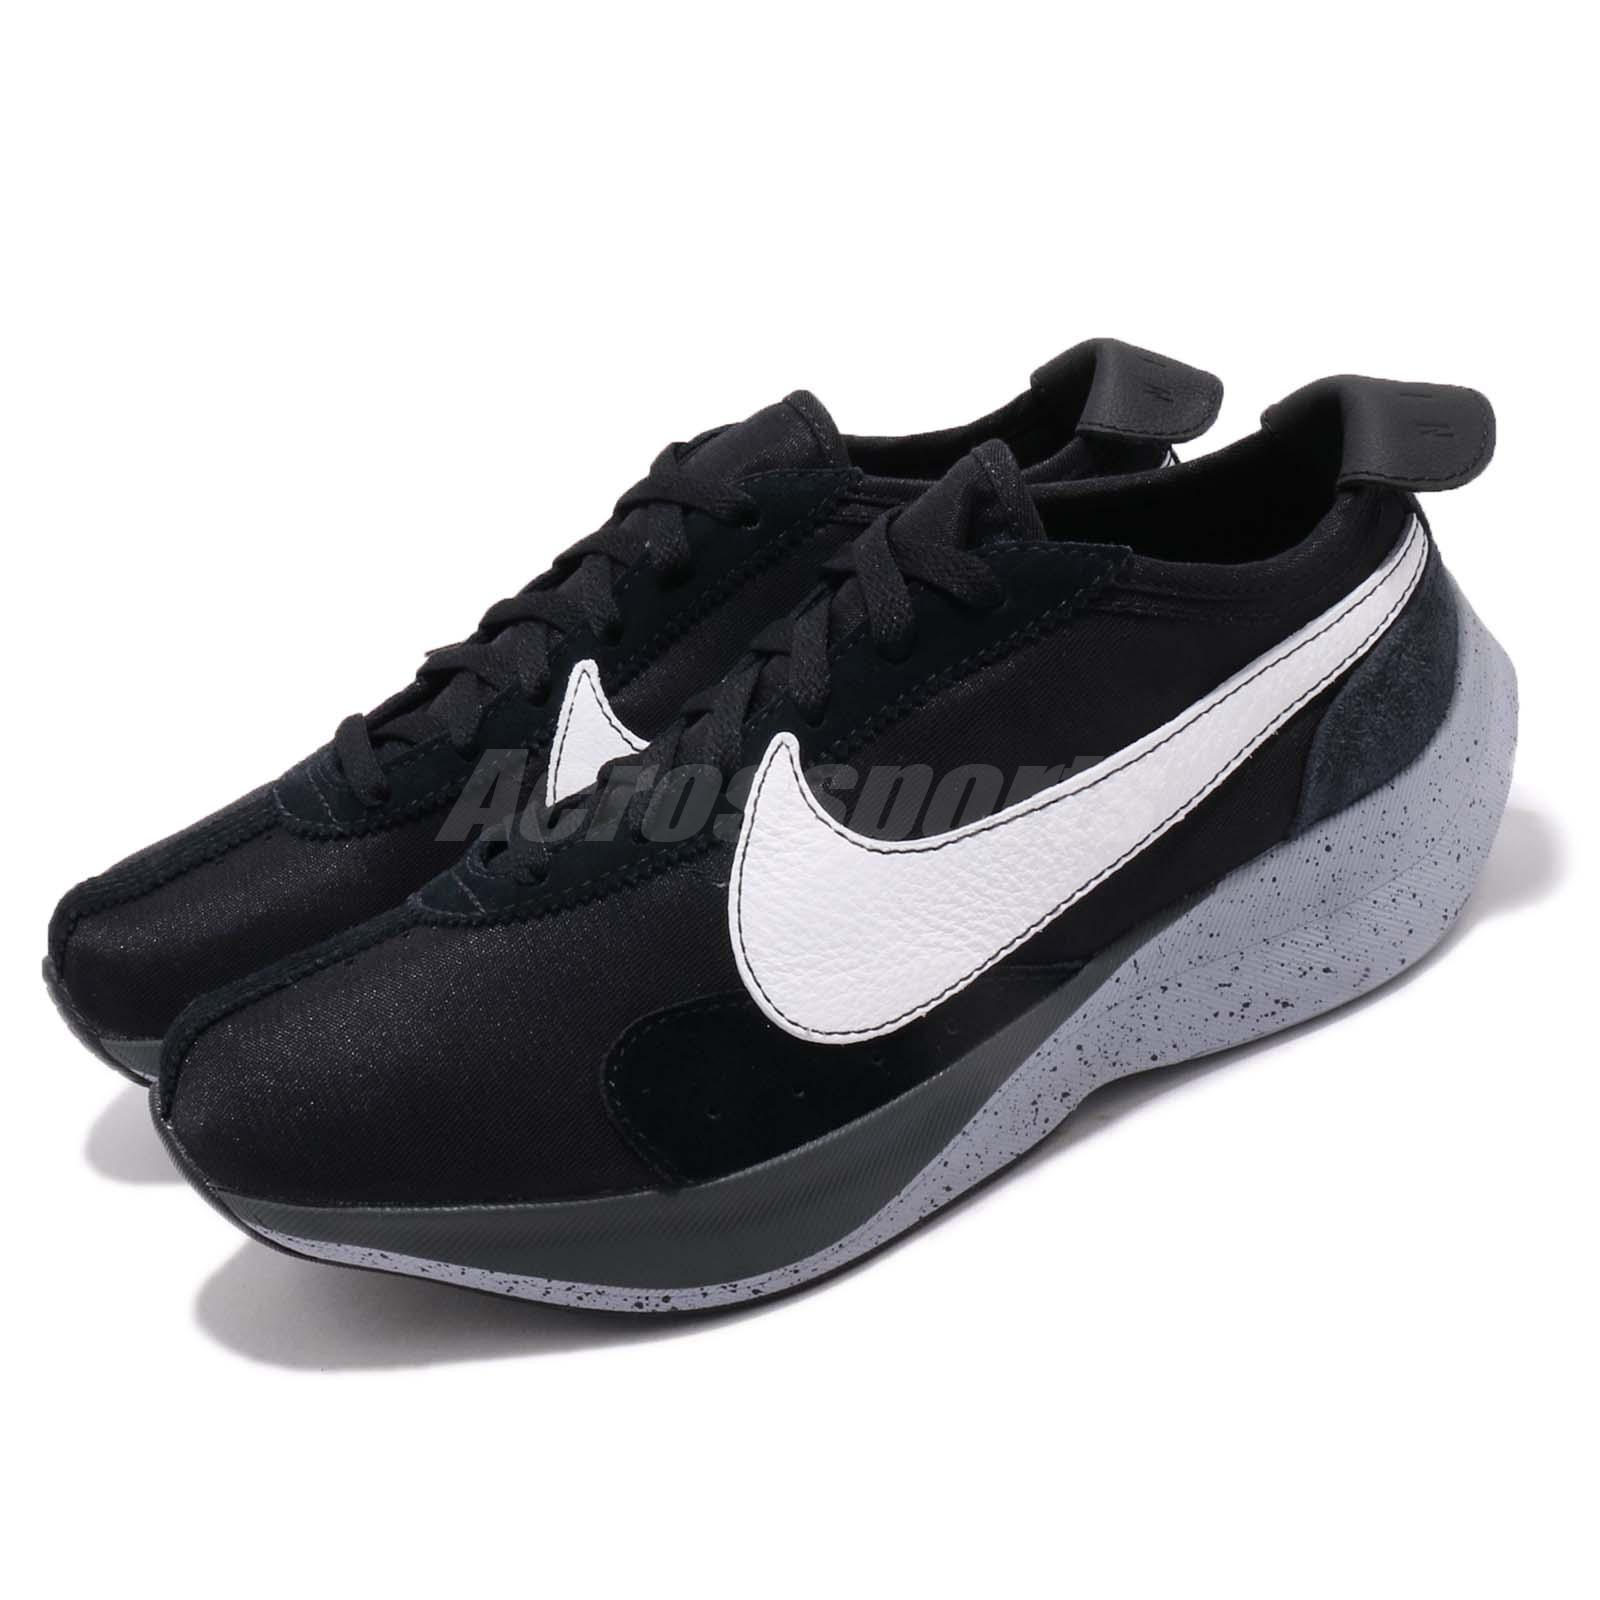 c217d22184f Details about Nike Moon Racer Black White Grey Mens Running Shoes Sneakers  AQ4121-001